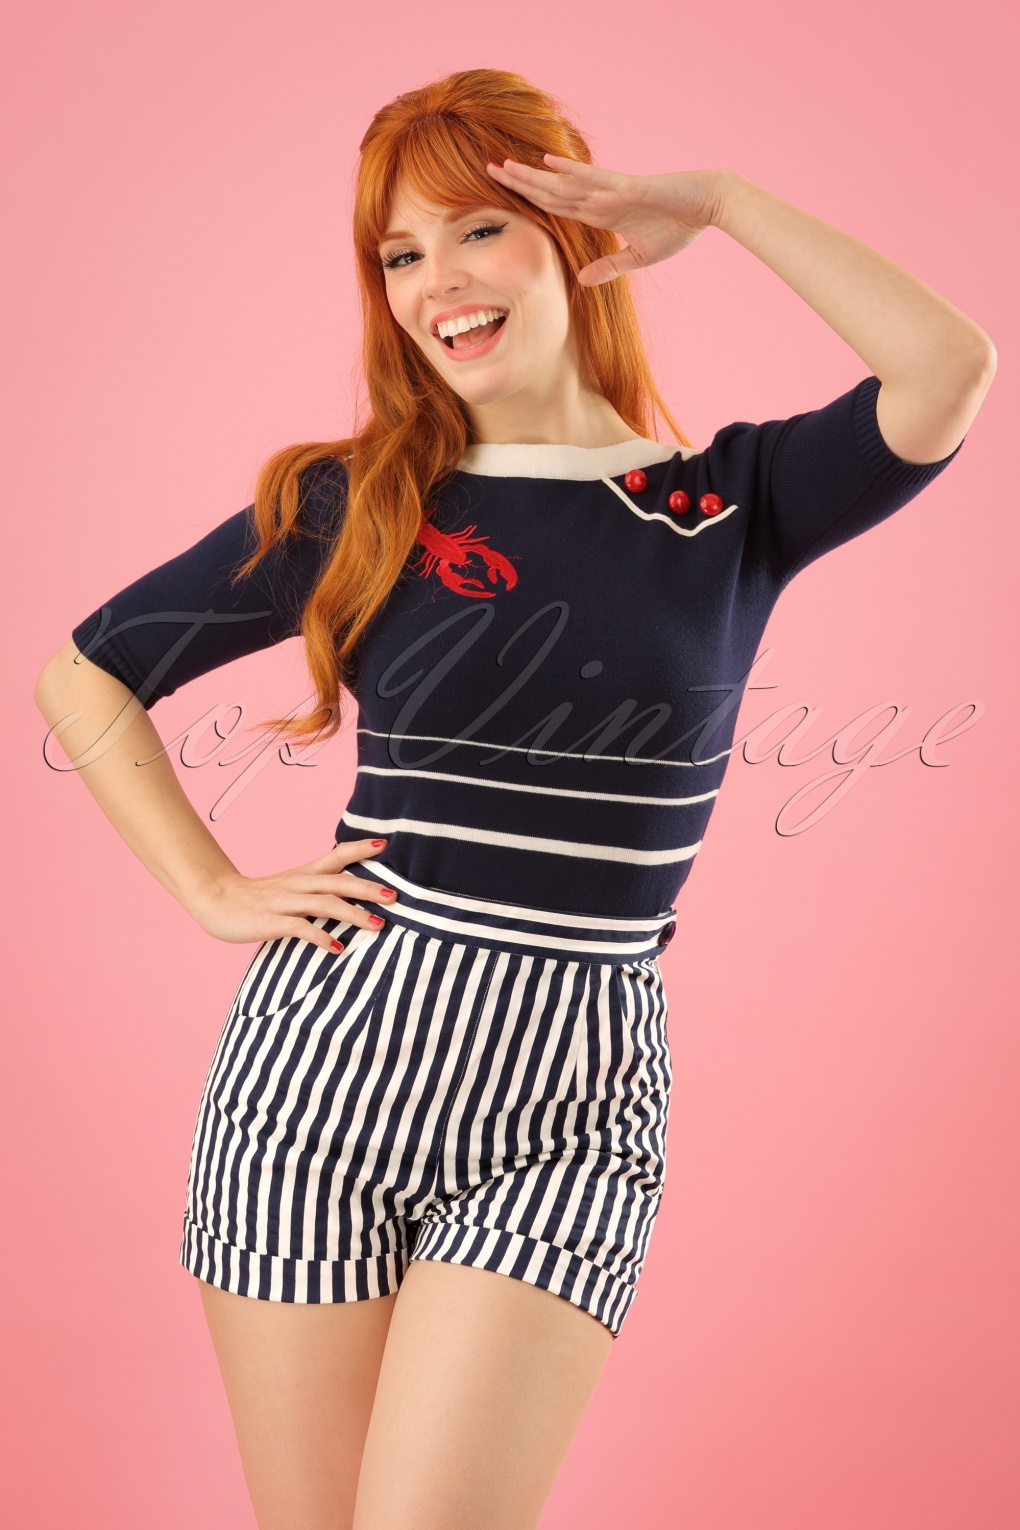 Vintage High Waisted Shorts, Sailor Shorts, Capris 50s Ayana Striped Shorts in Navy and White £37.11 AT vintagedancer.com